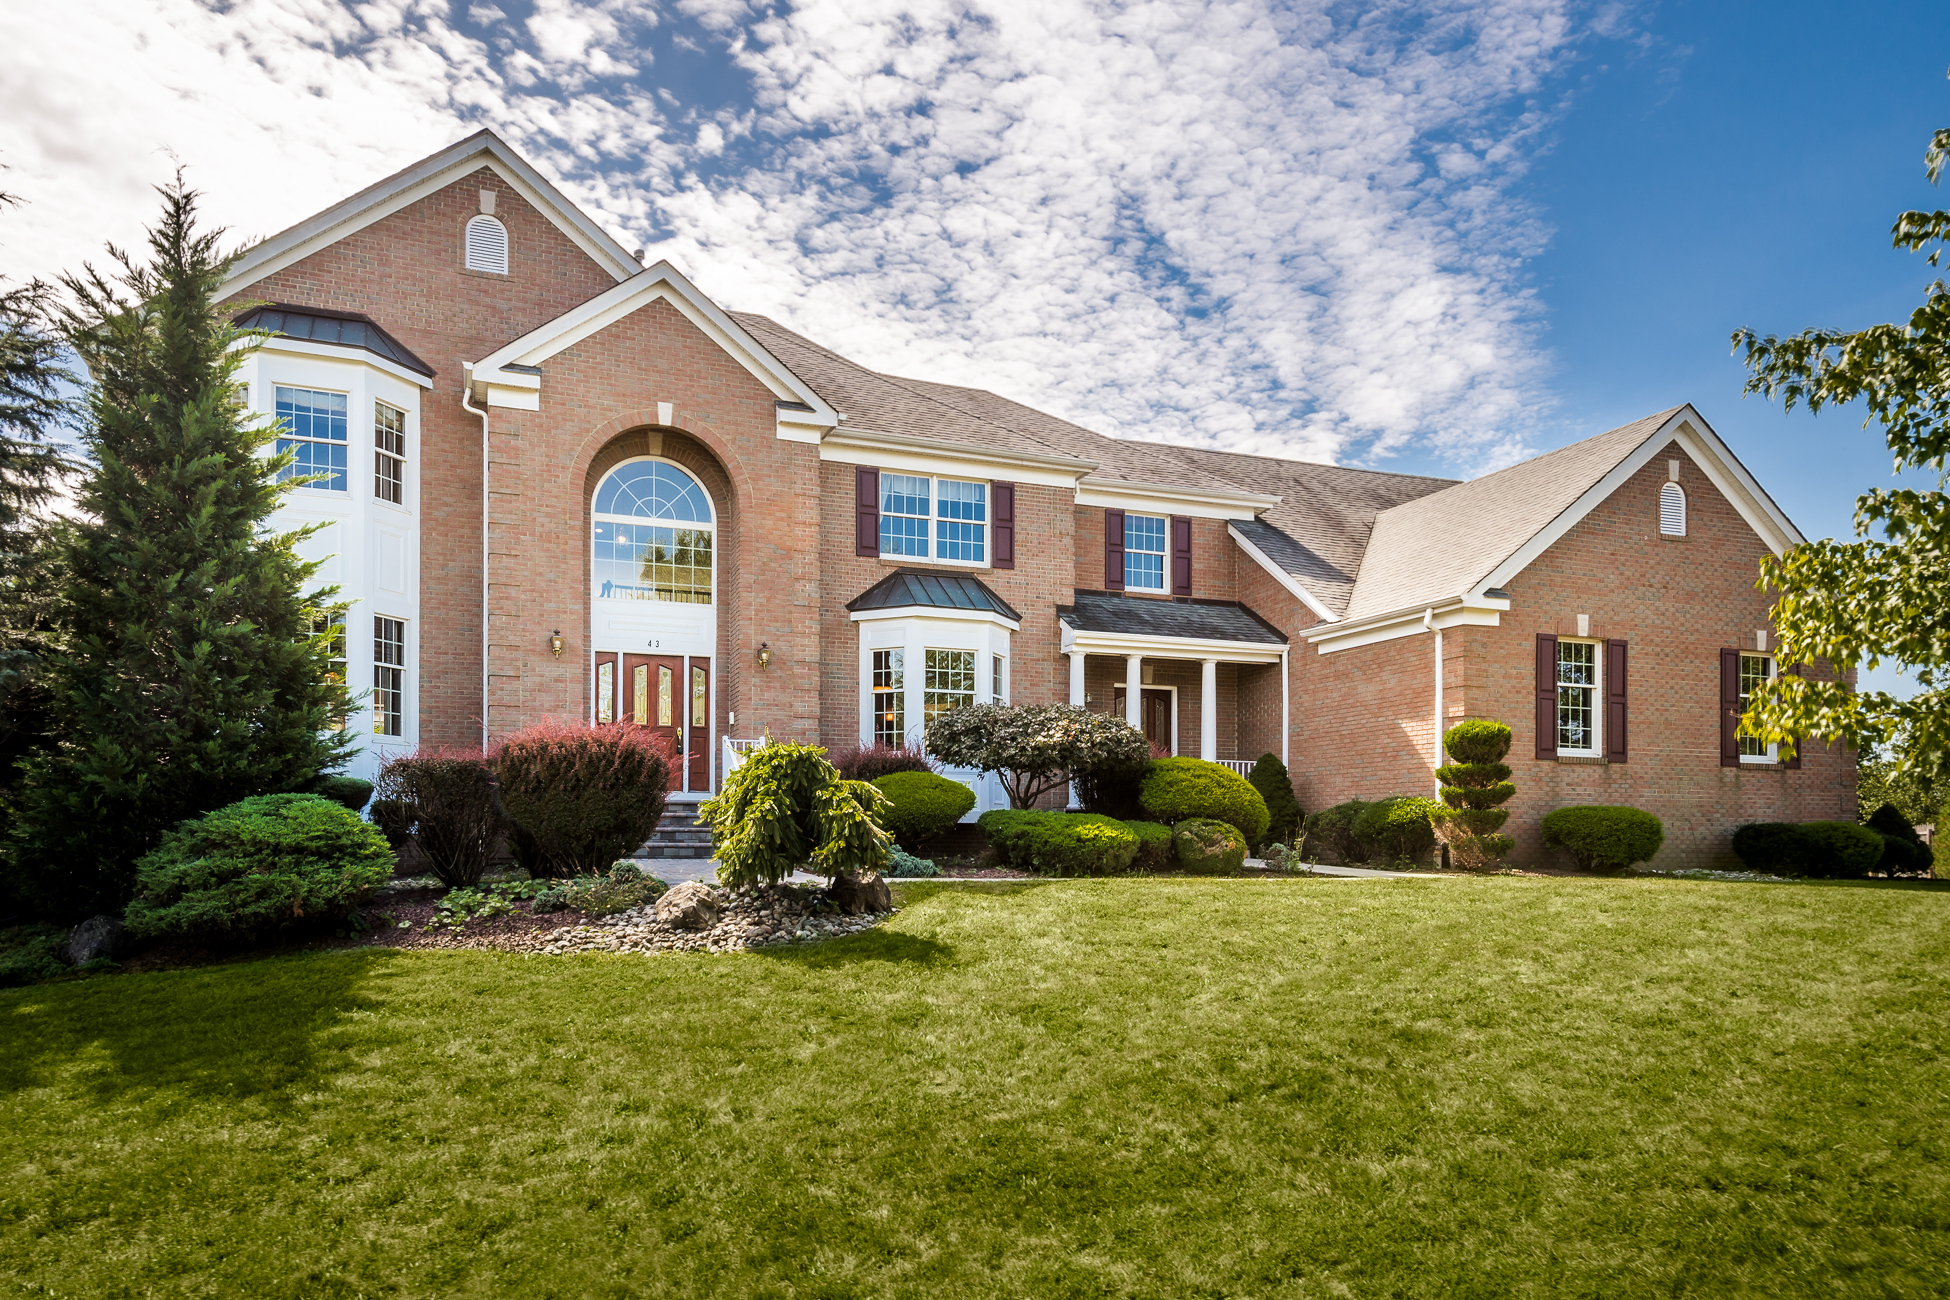 独户住宅 为 销售 在 Grand Style Entertaining - Montgomery Township 43 Rosewood Court Belle Mead, 08502 美国